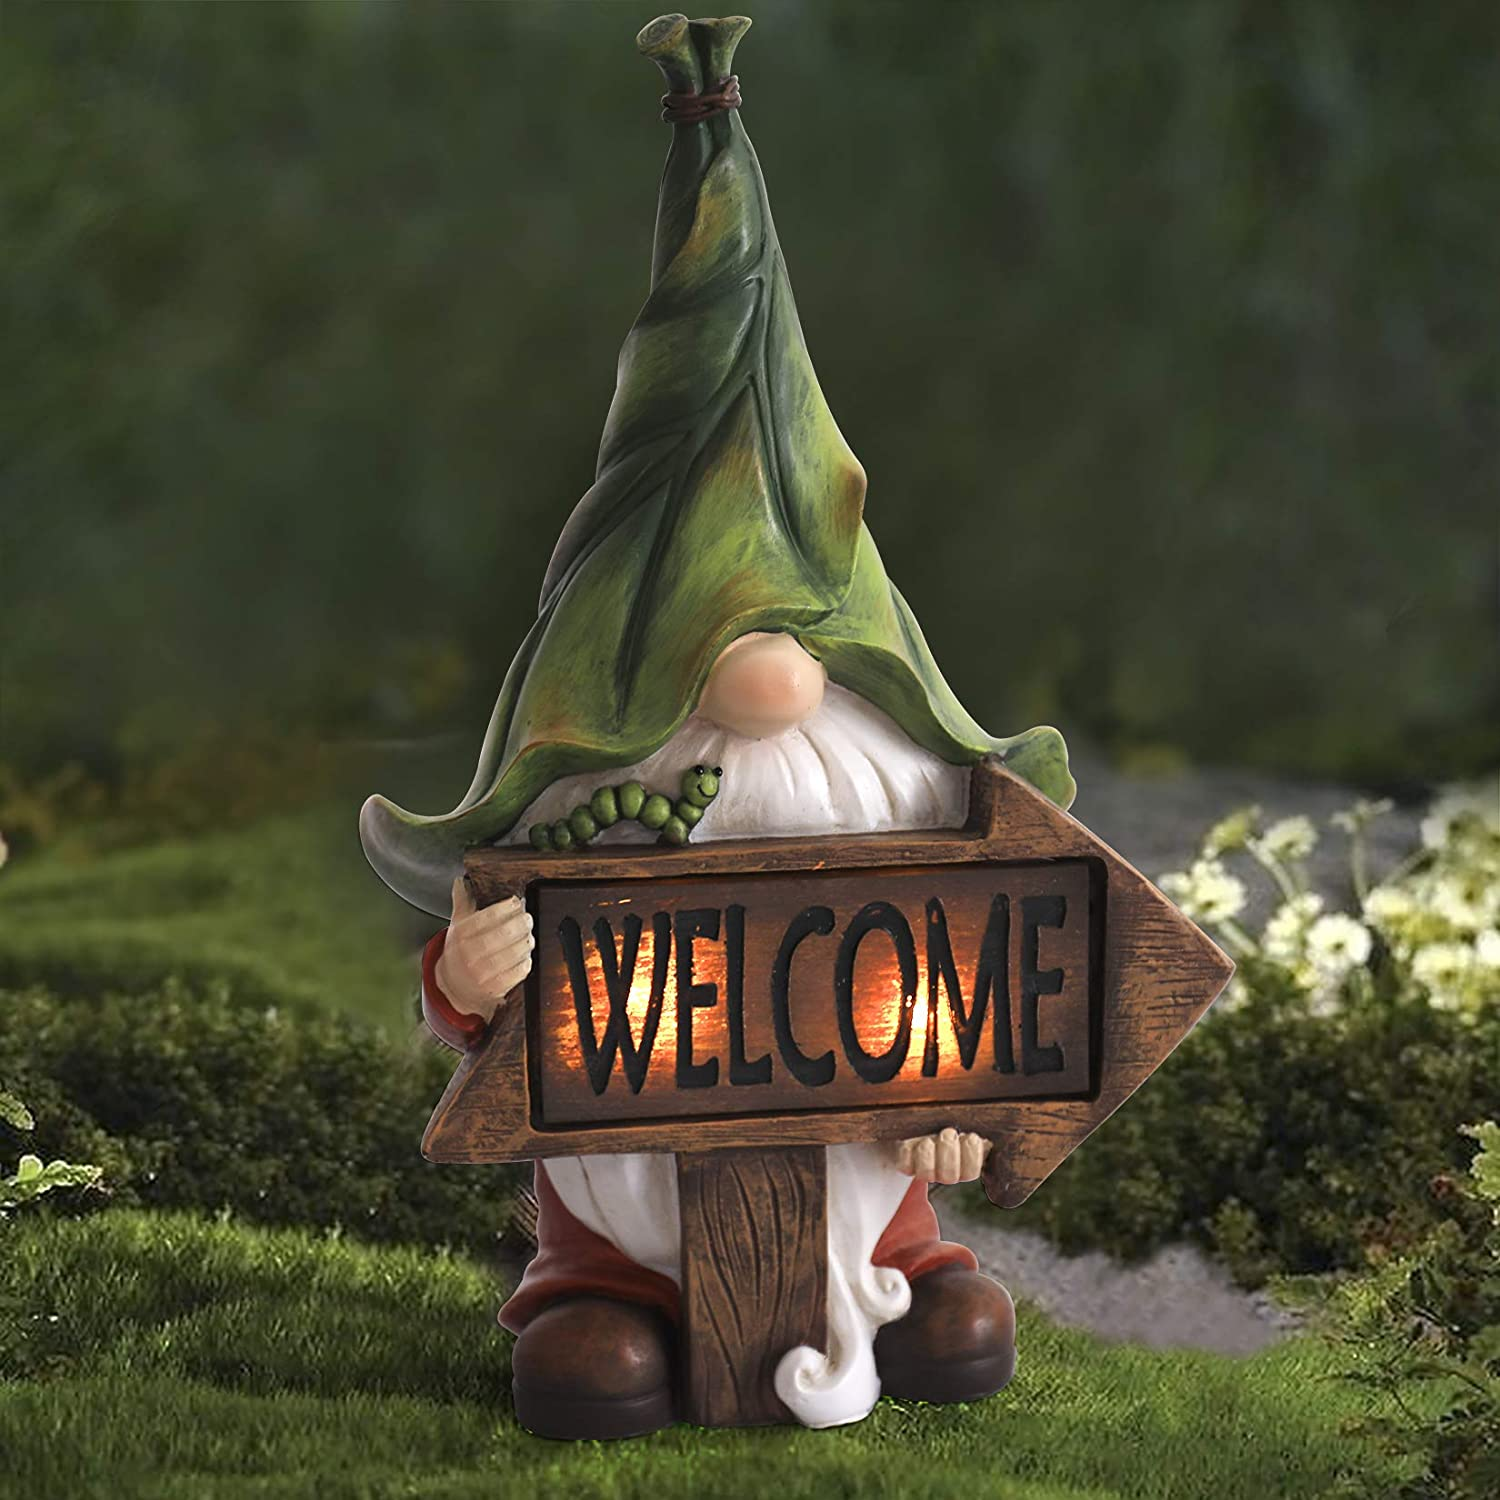 LA JOLIE MUSE Garden Gnome Statue - Resin Gnome Figurine Holding Welcome Sign with Solar LED Lights, Outdoor Fall Winter Christmas Decorations for Patio Yard Lawn Porch, Ornament Gift